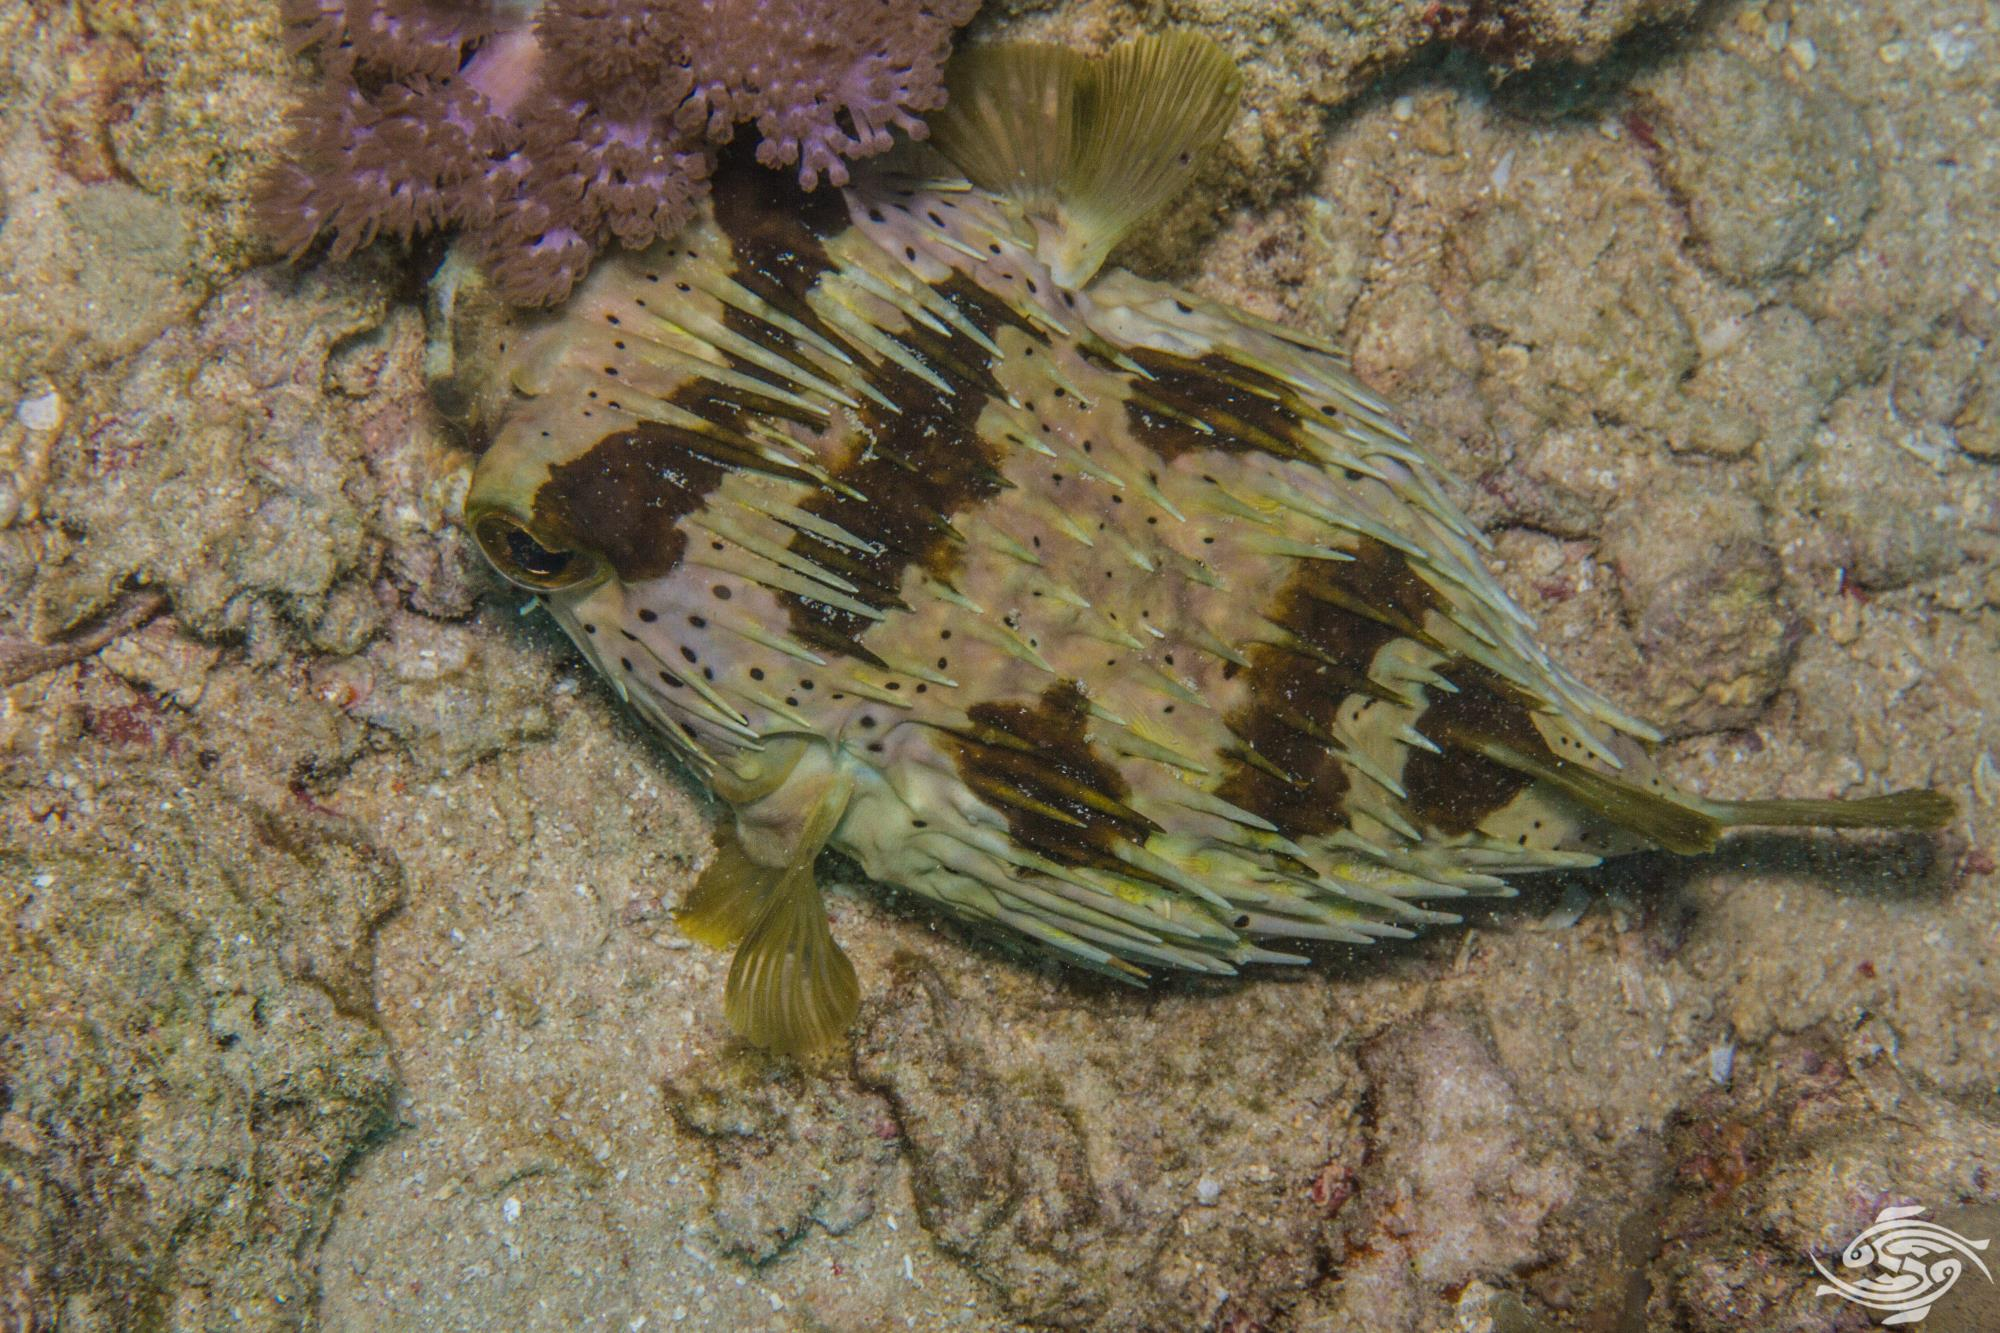 https://seaunseen.com/long-spine-porcupinefish/